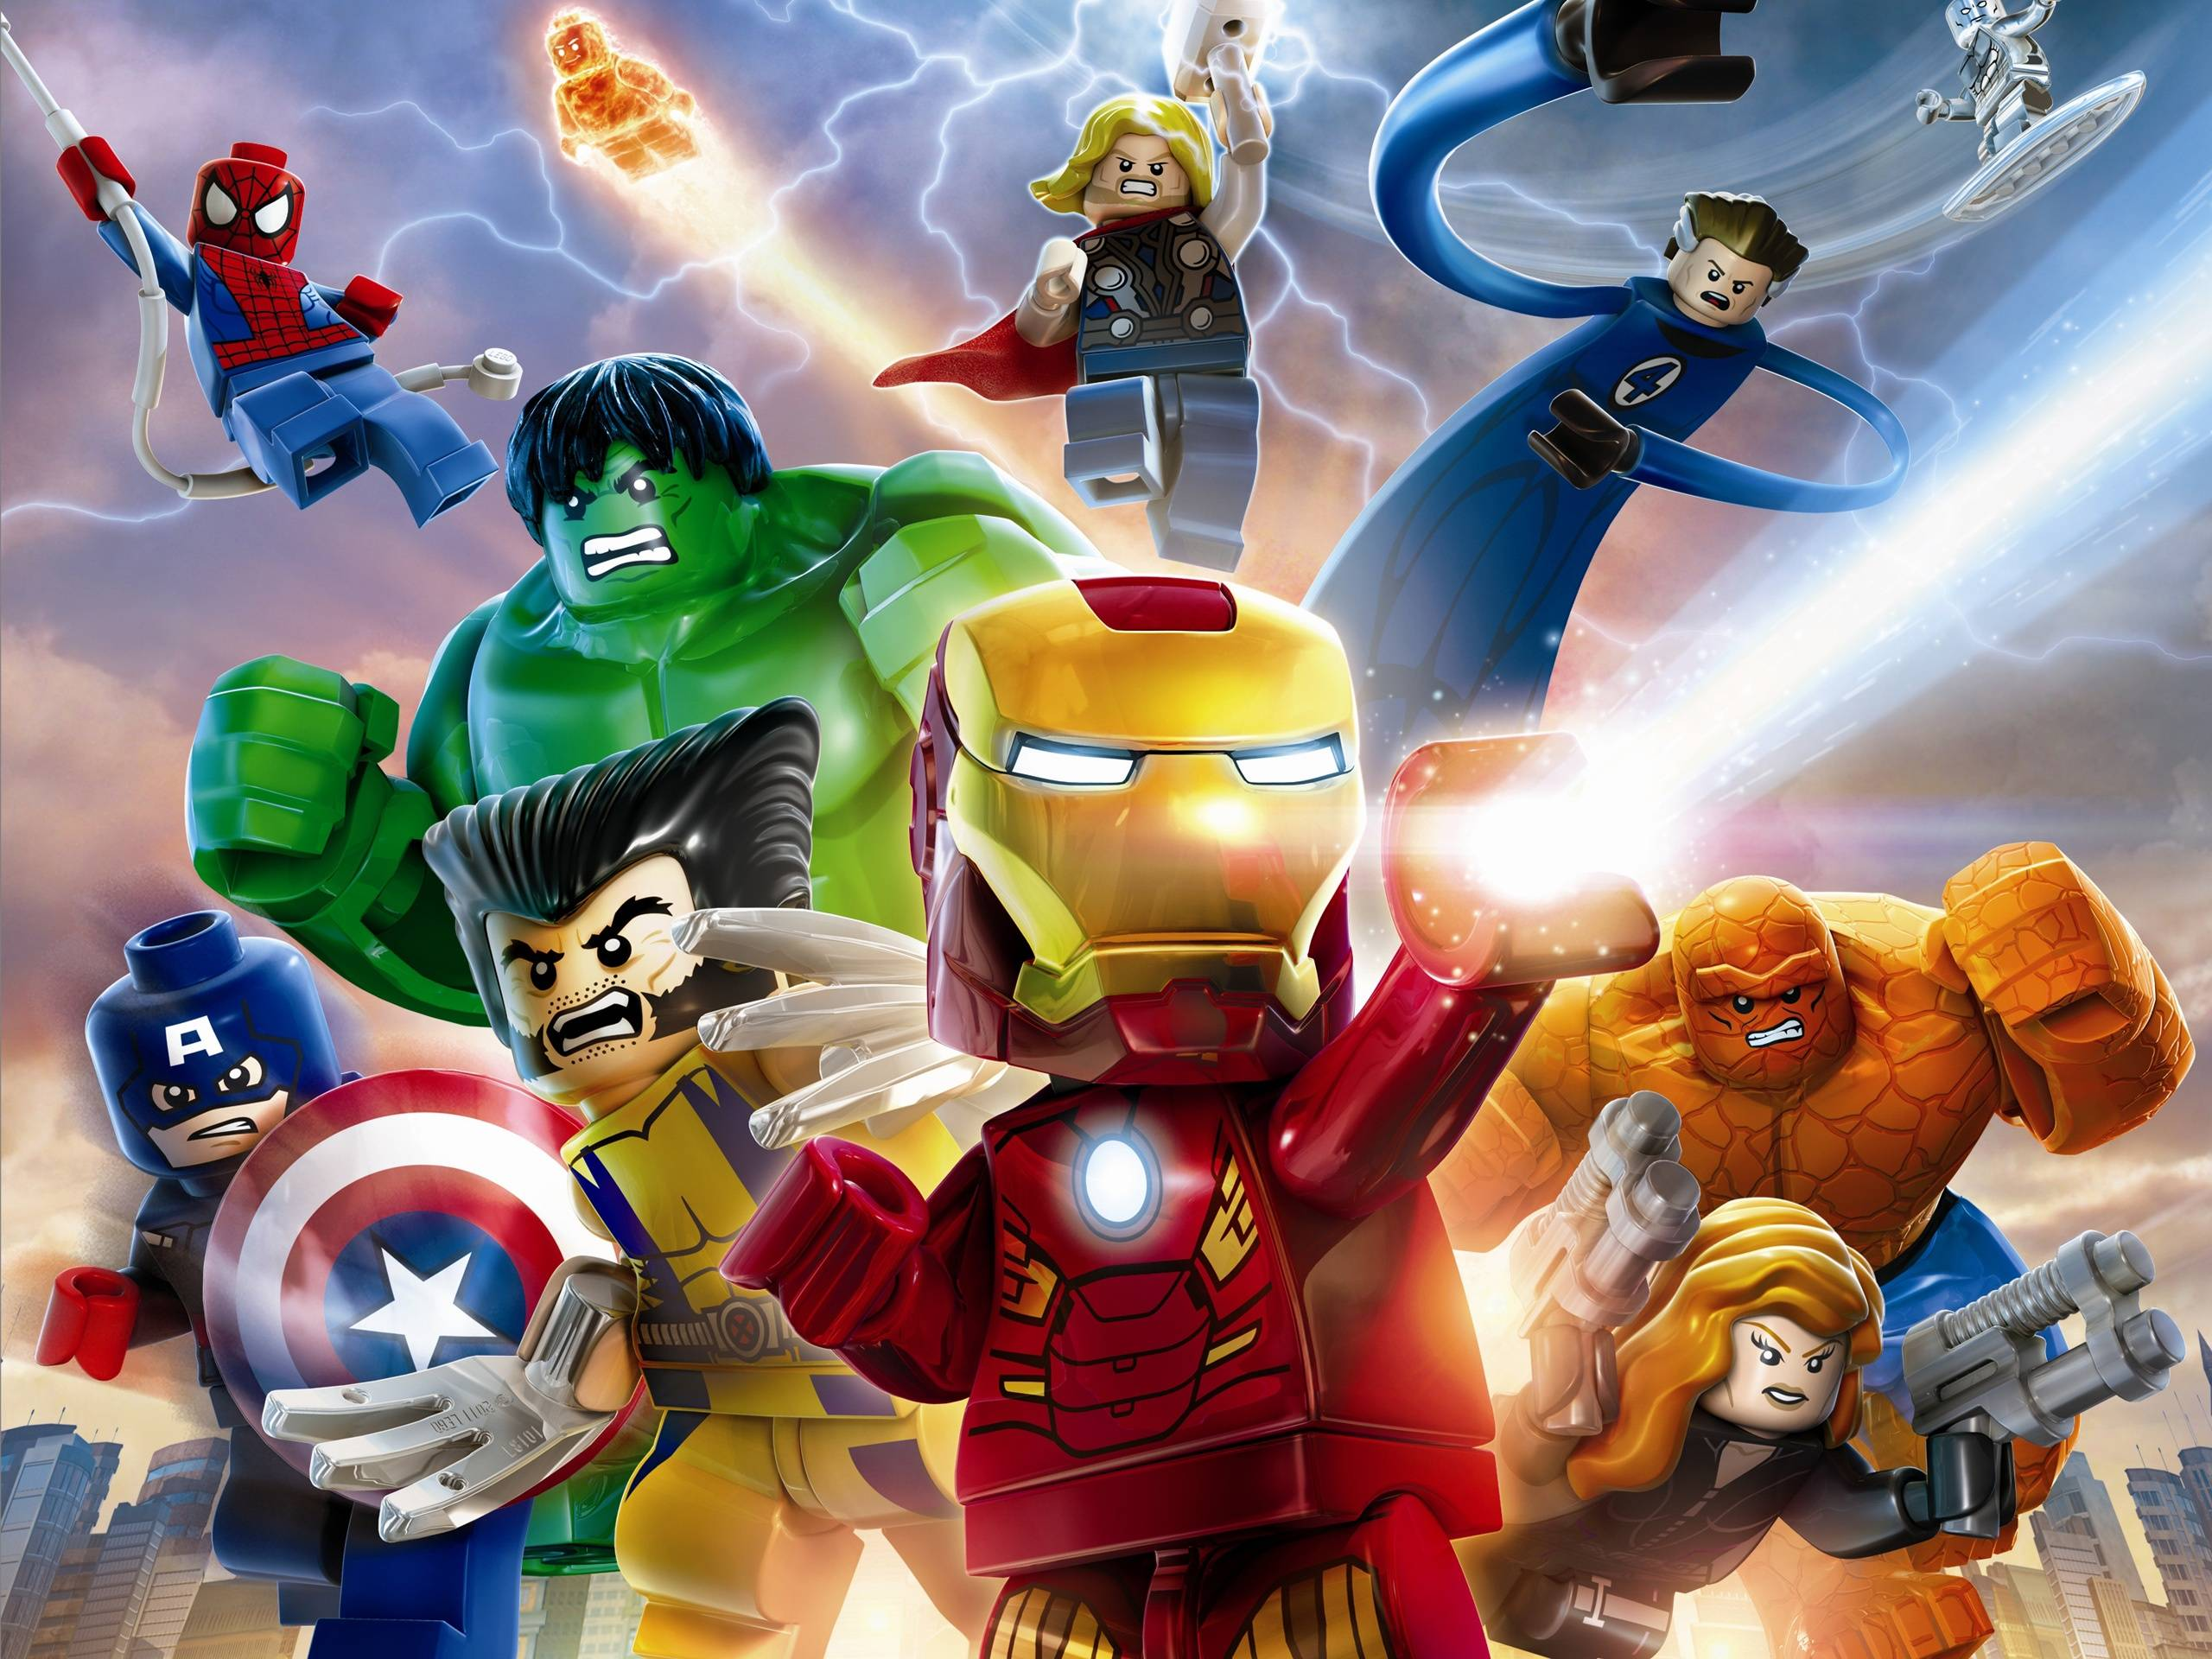 lego marvel wallpaper for desktop - photo #2